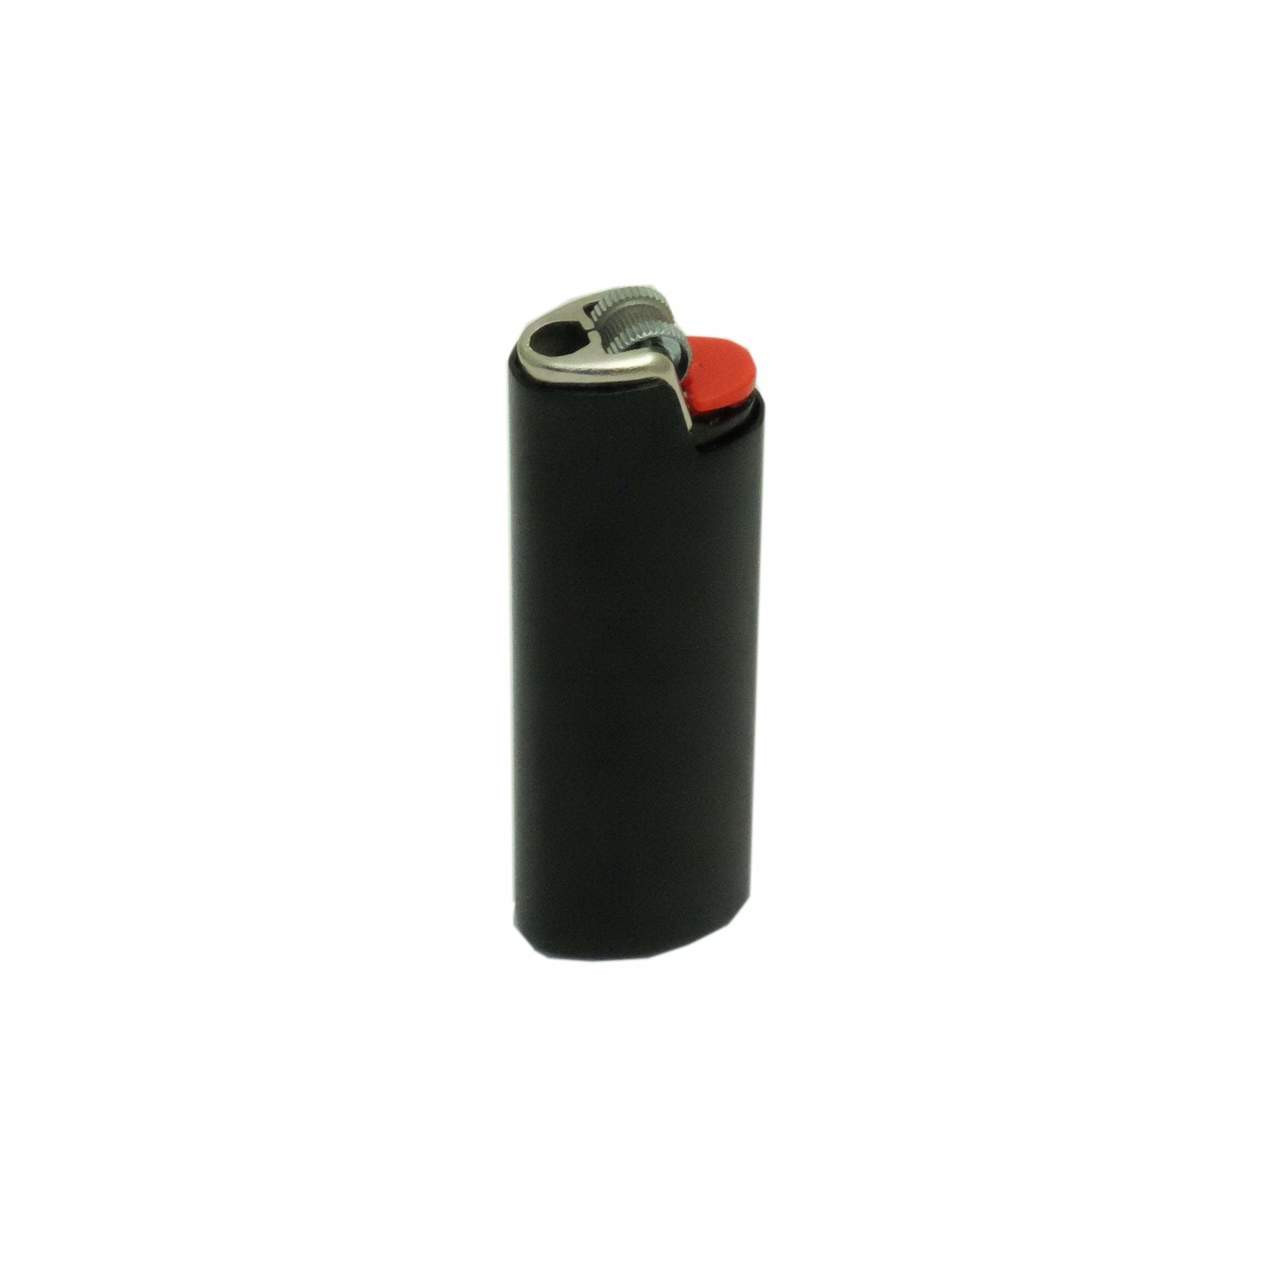 Lighter Covert Voice Recorder